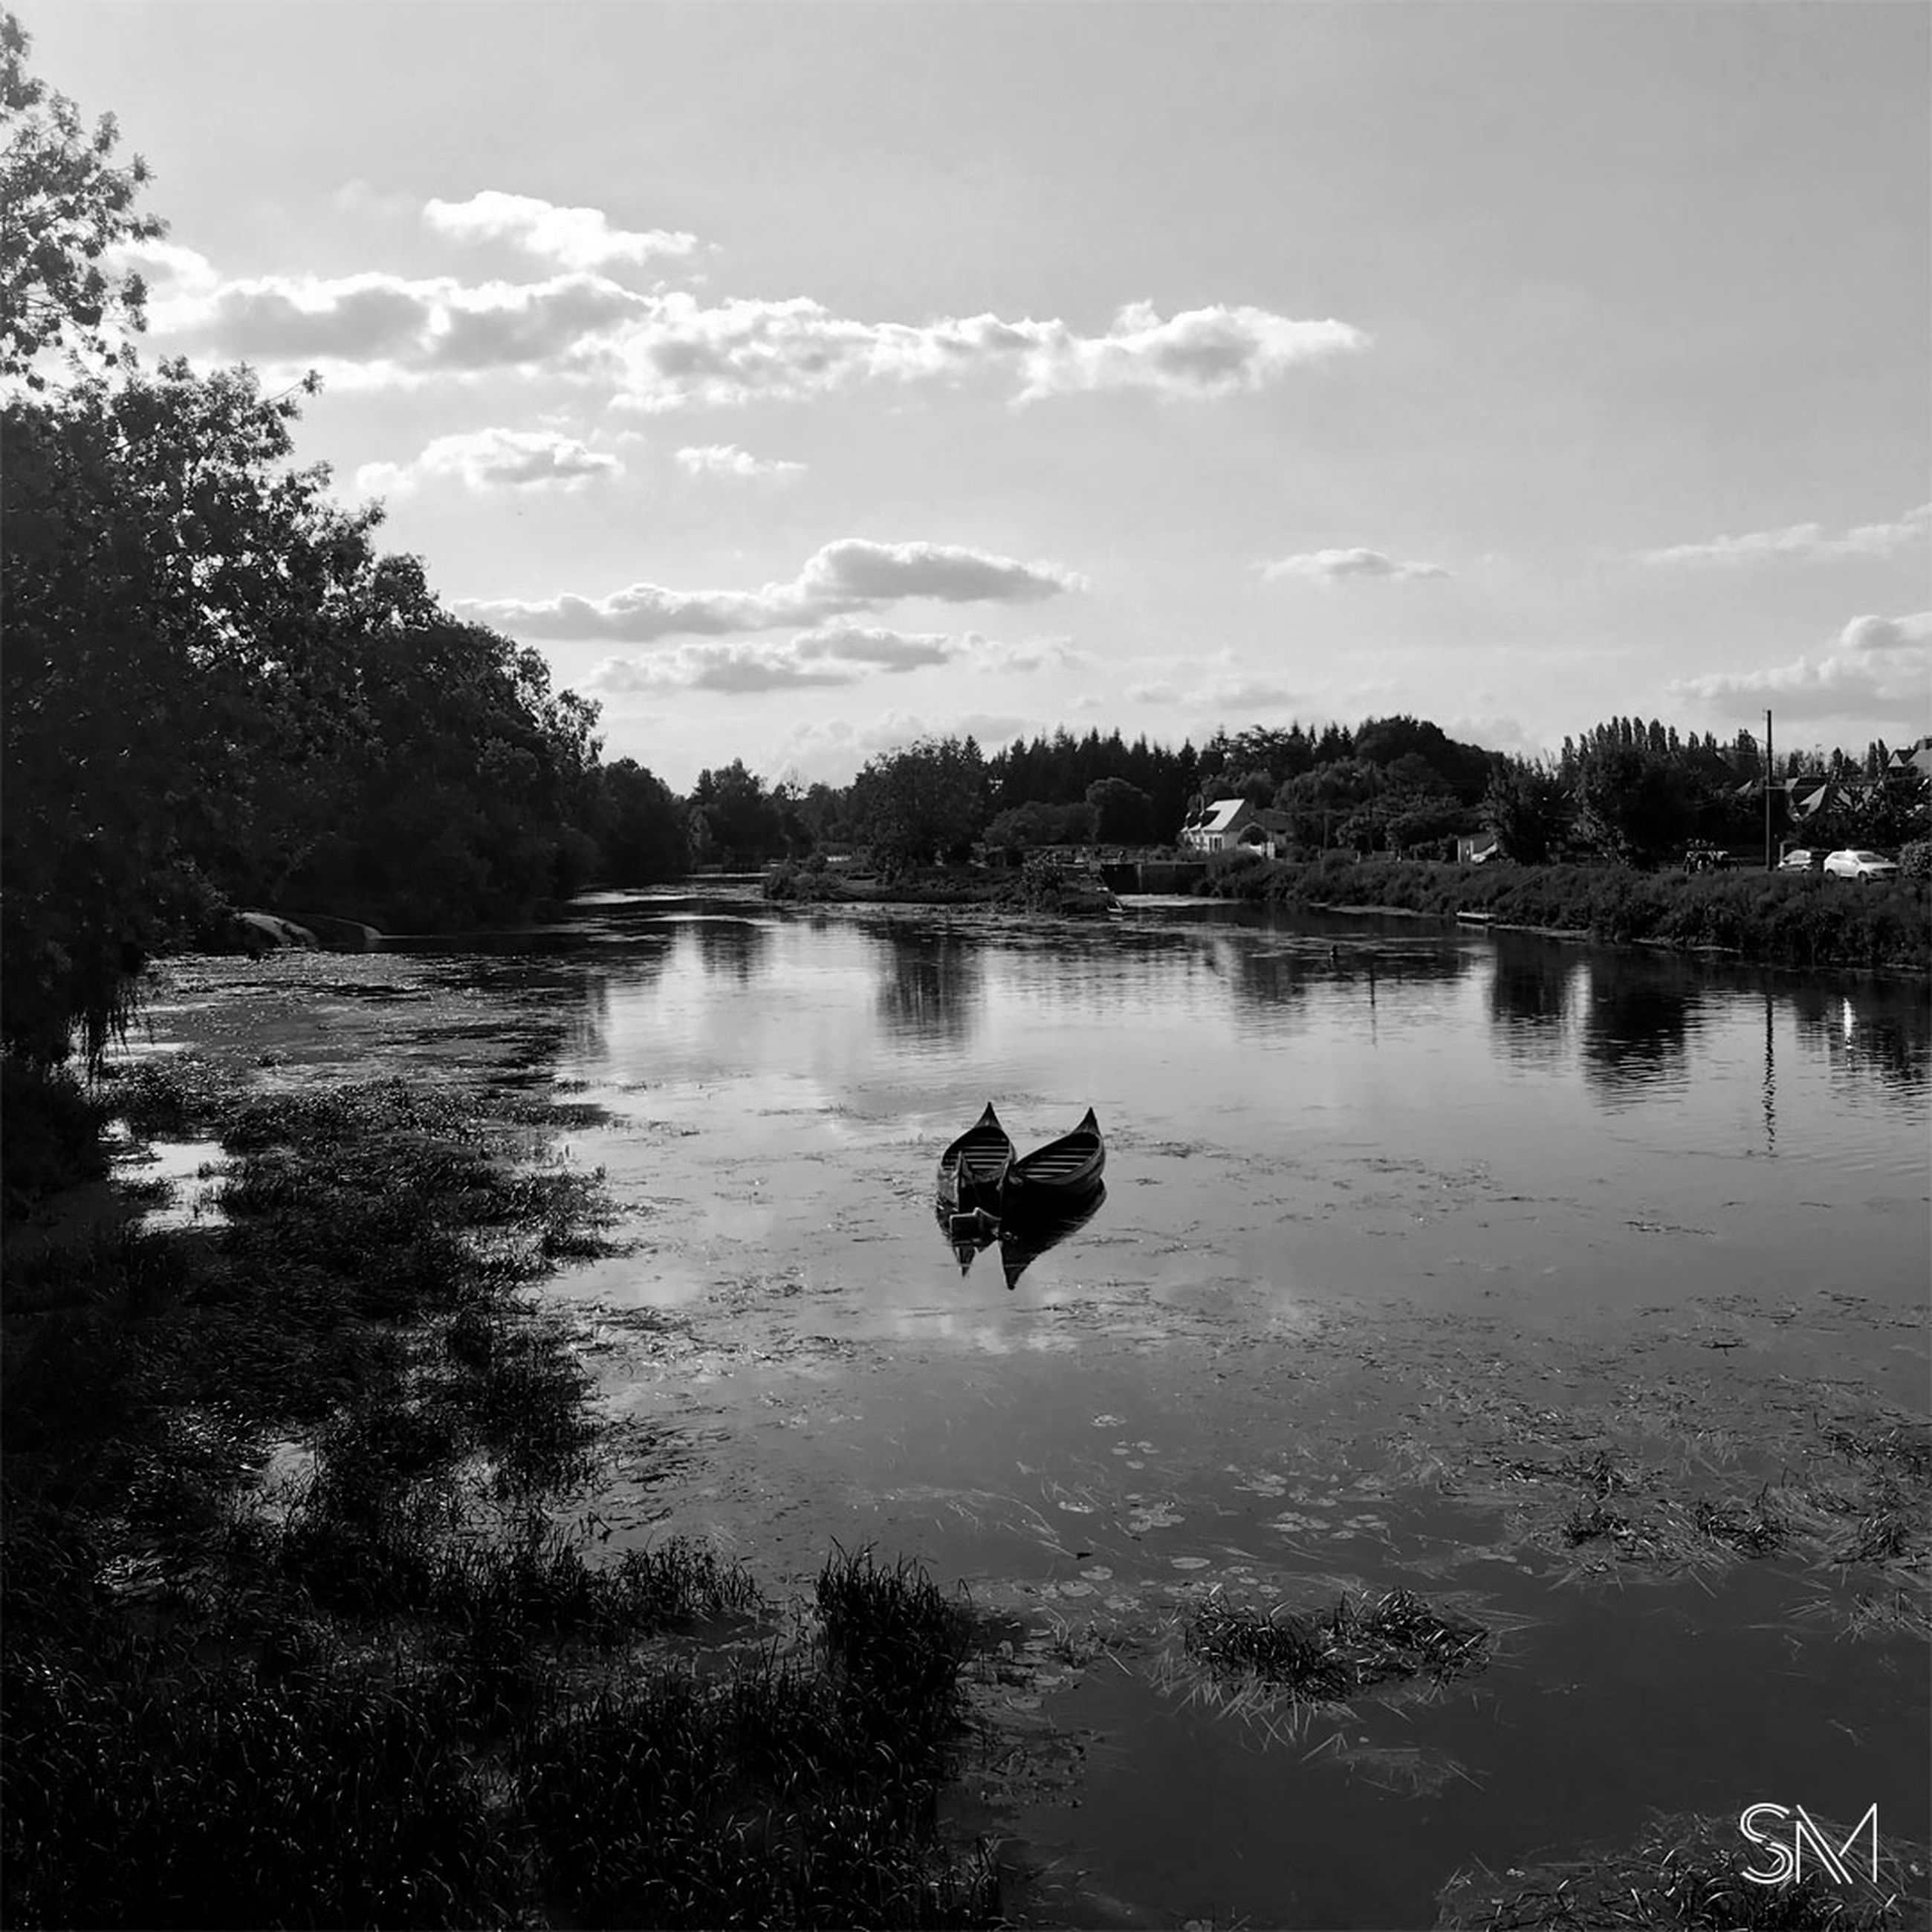 water, tree, reflection, lake, sky, black and white, nature, plant, monochrome, monochrome photography, animal themes, animal, one animal, beauty in nature, cloud, tranquility, scenics - nature, day, one person, tranquil scene, outdoors, mammal, domestic animals, canine, pet, animal wildlife, swimming, wildlife, non-urban scene, dog, silhouette, black, bird, darkness, leisure activity, men, morning